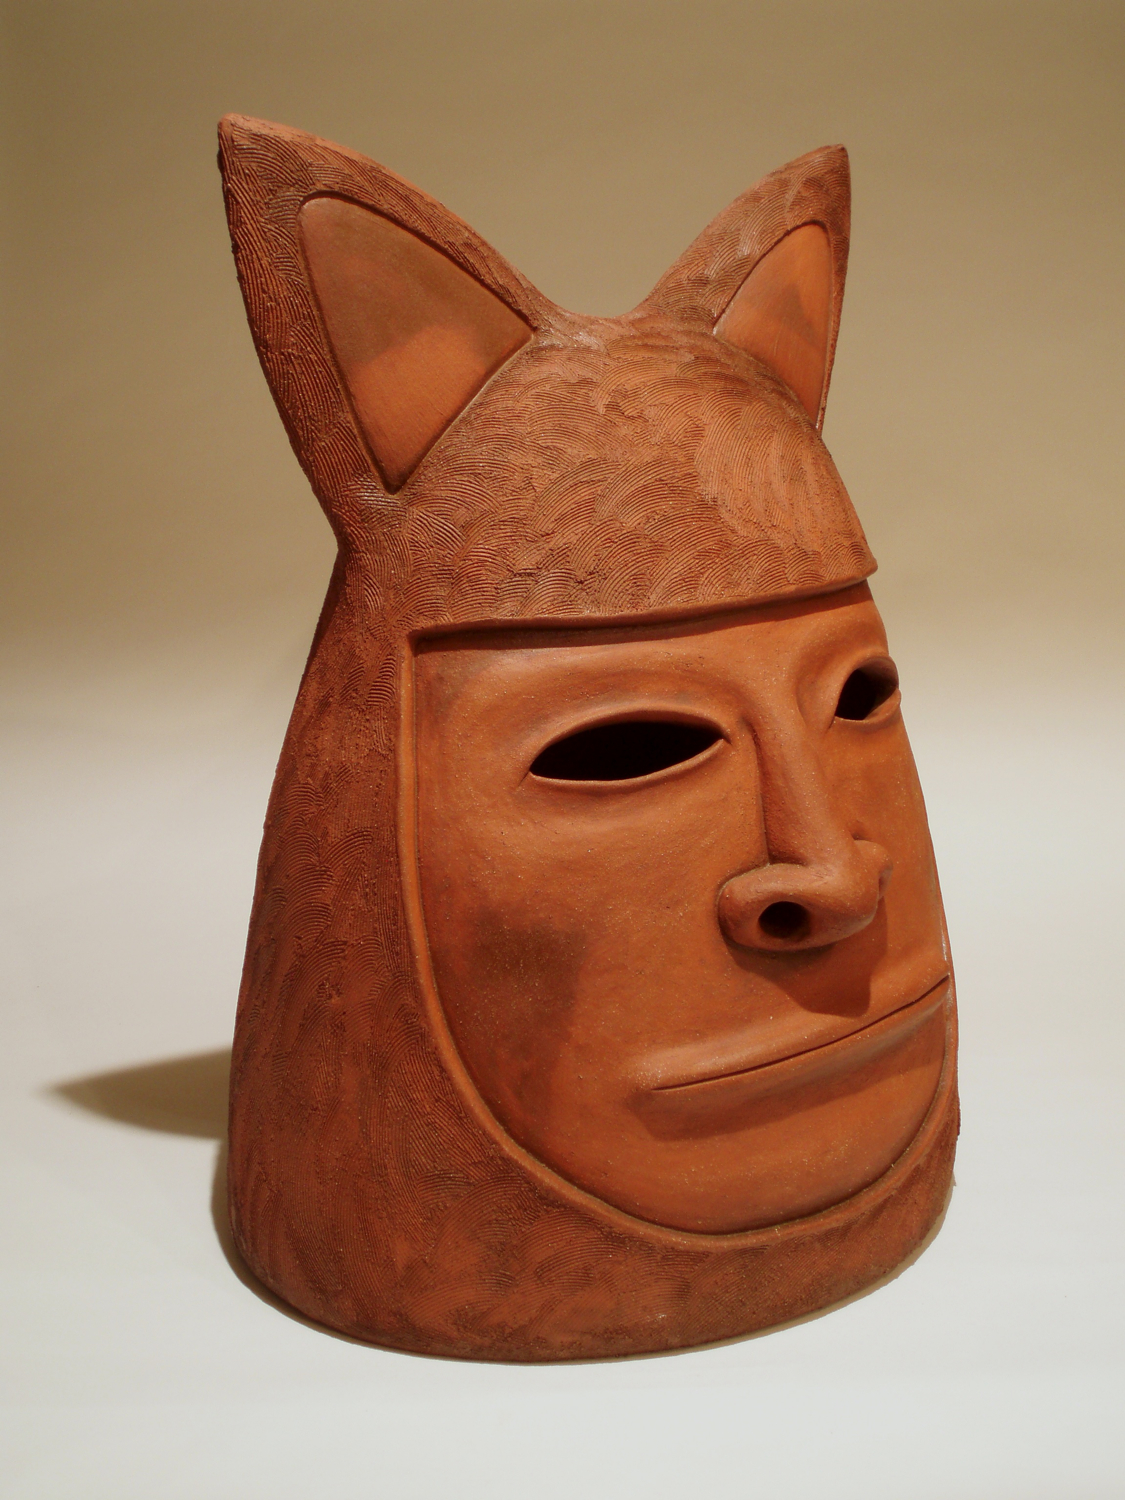 Colossal Kitty head   pit-fired terra cotta, 2009